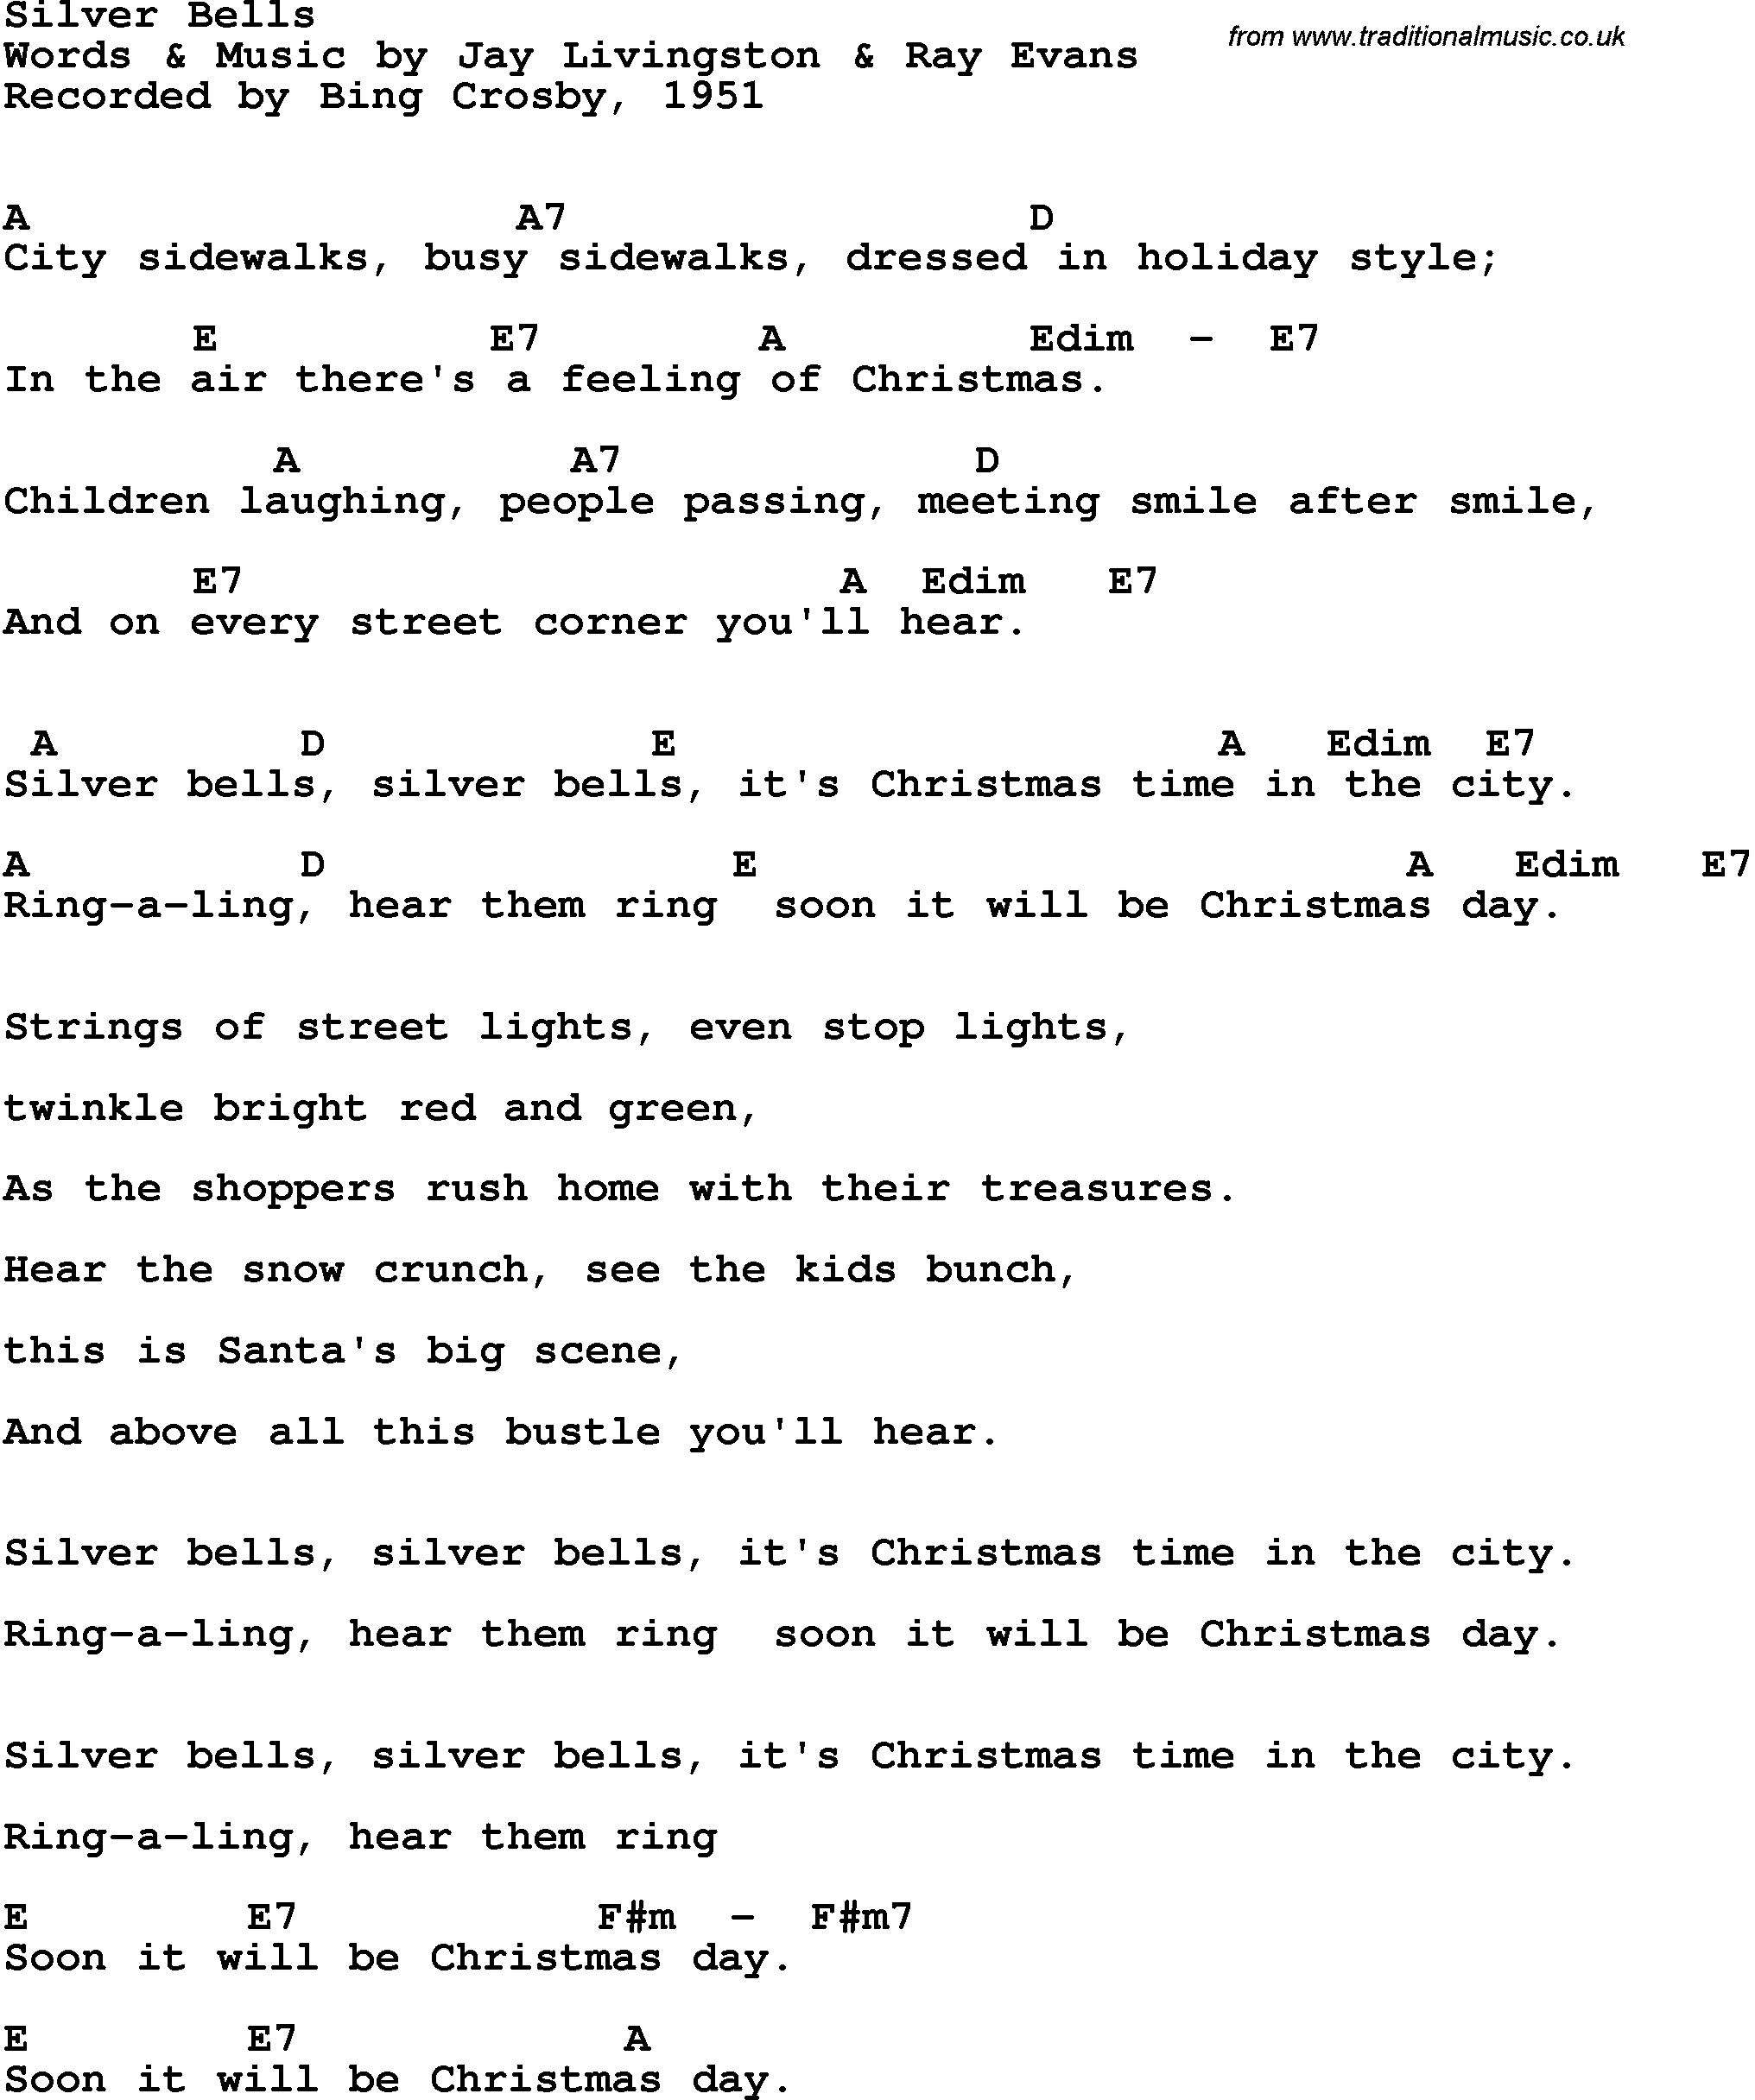 Guitar chords for silver bells